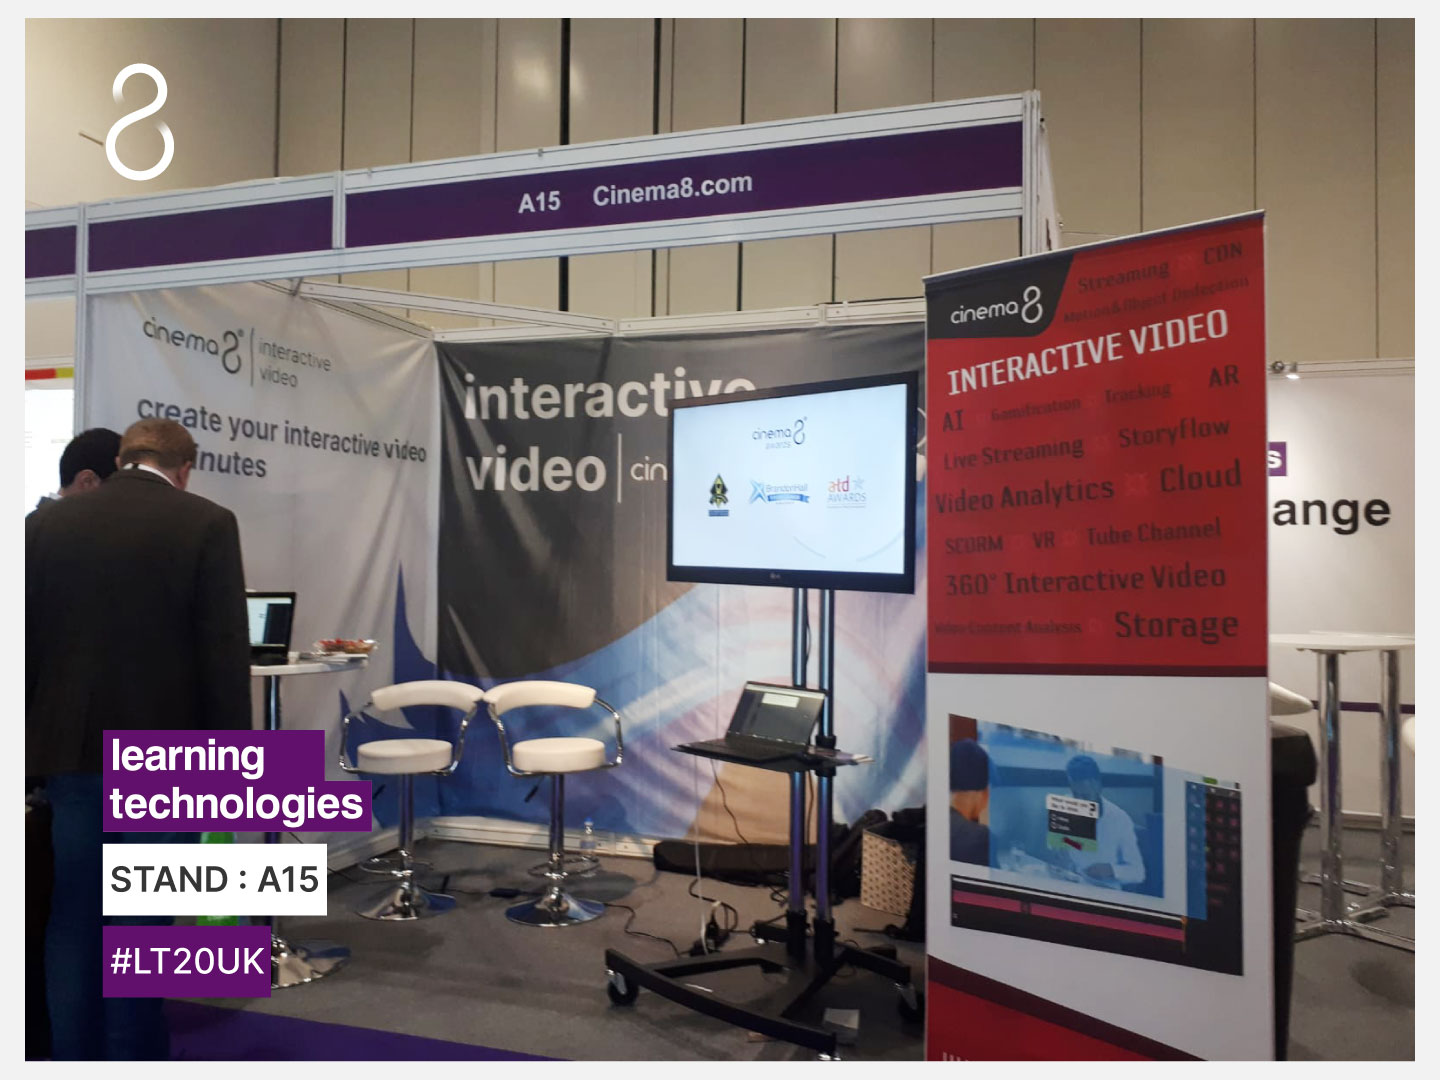 Blog - Cinema8 And Learning Technologies Exhibition 2020